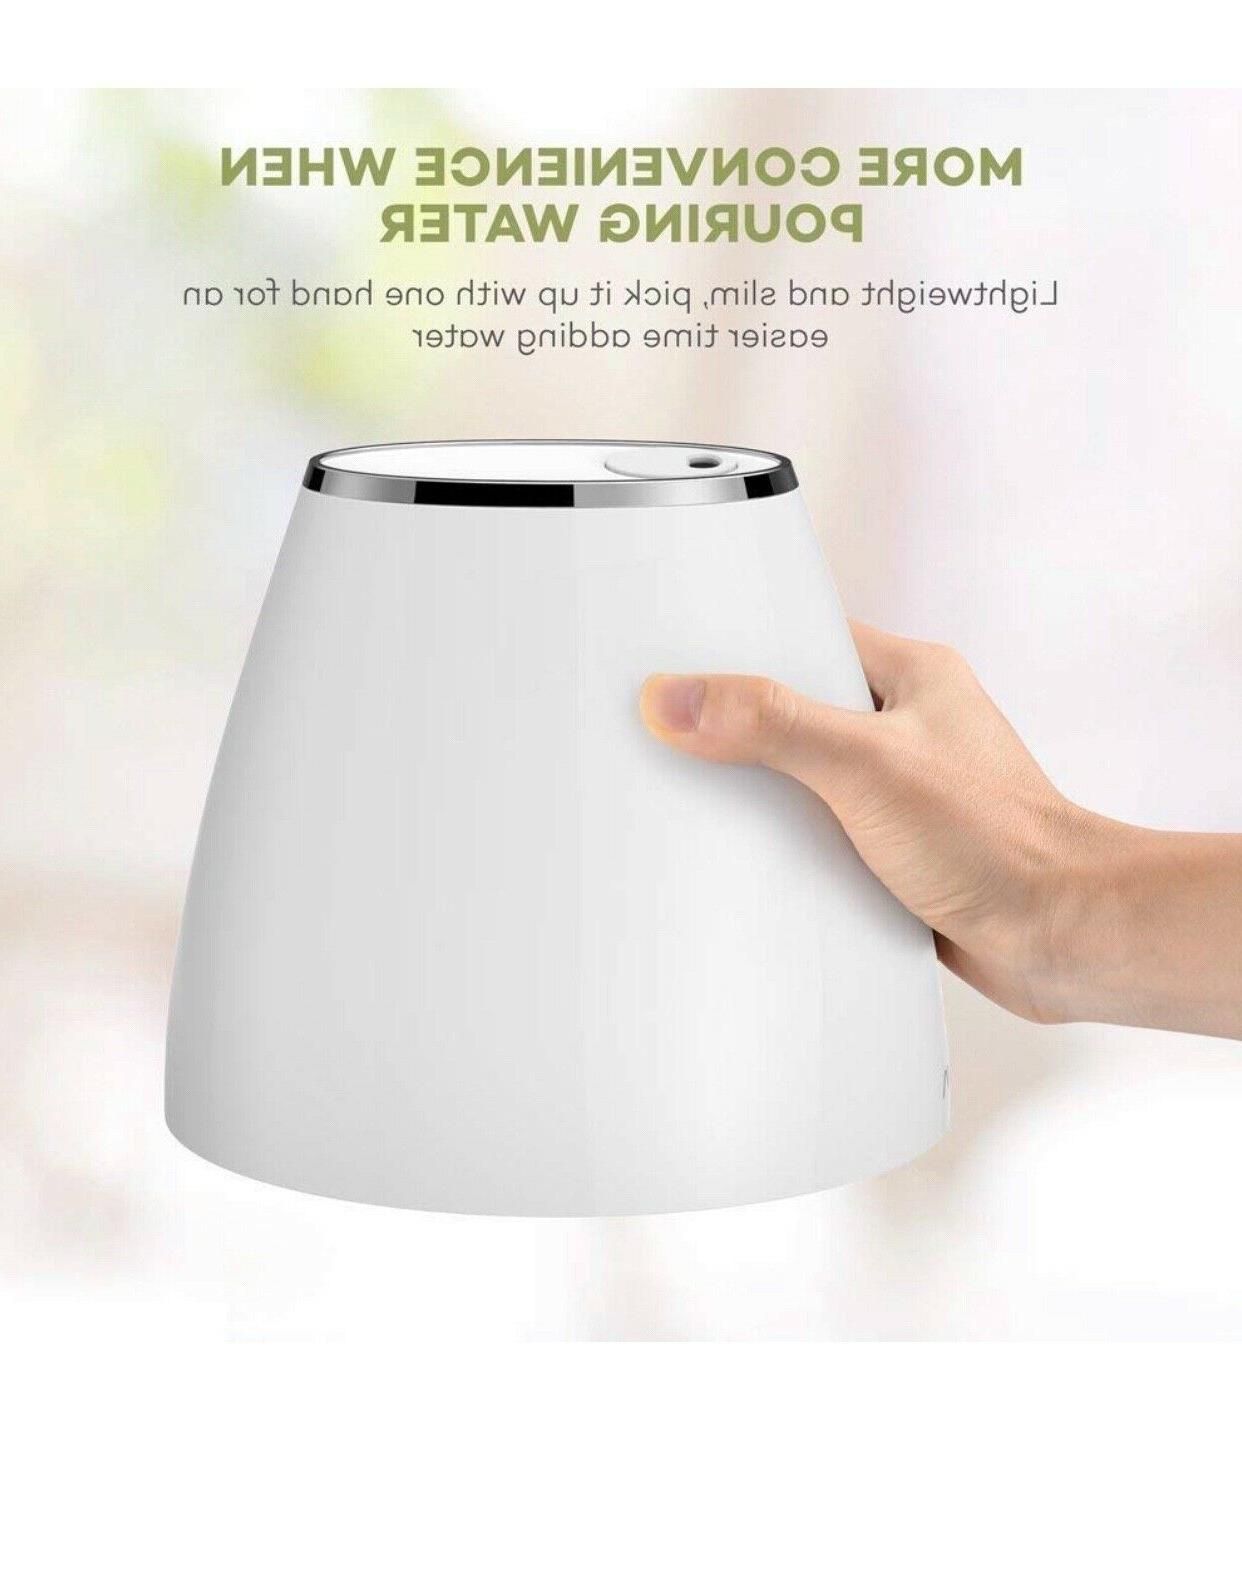 VAVA Humidifiers for Bedroom, Quiet and Small Ultrasonic Humidifier